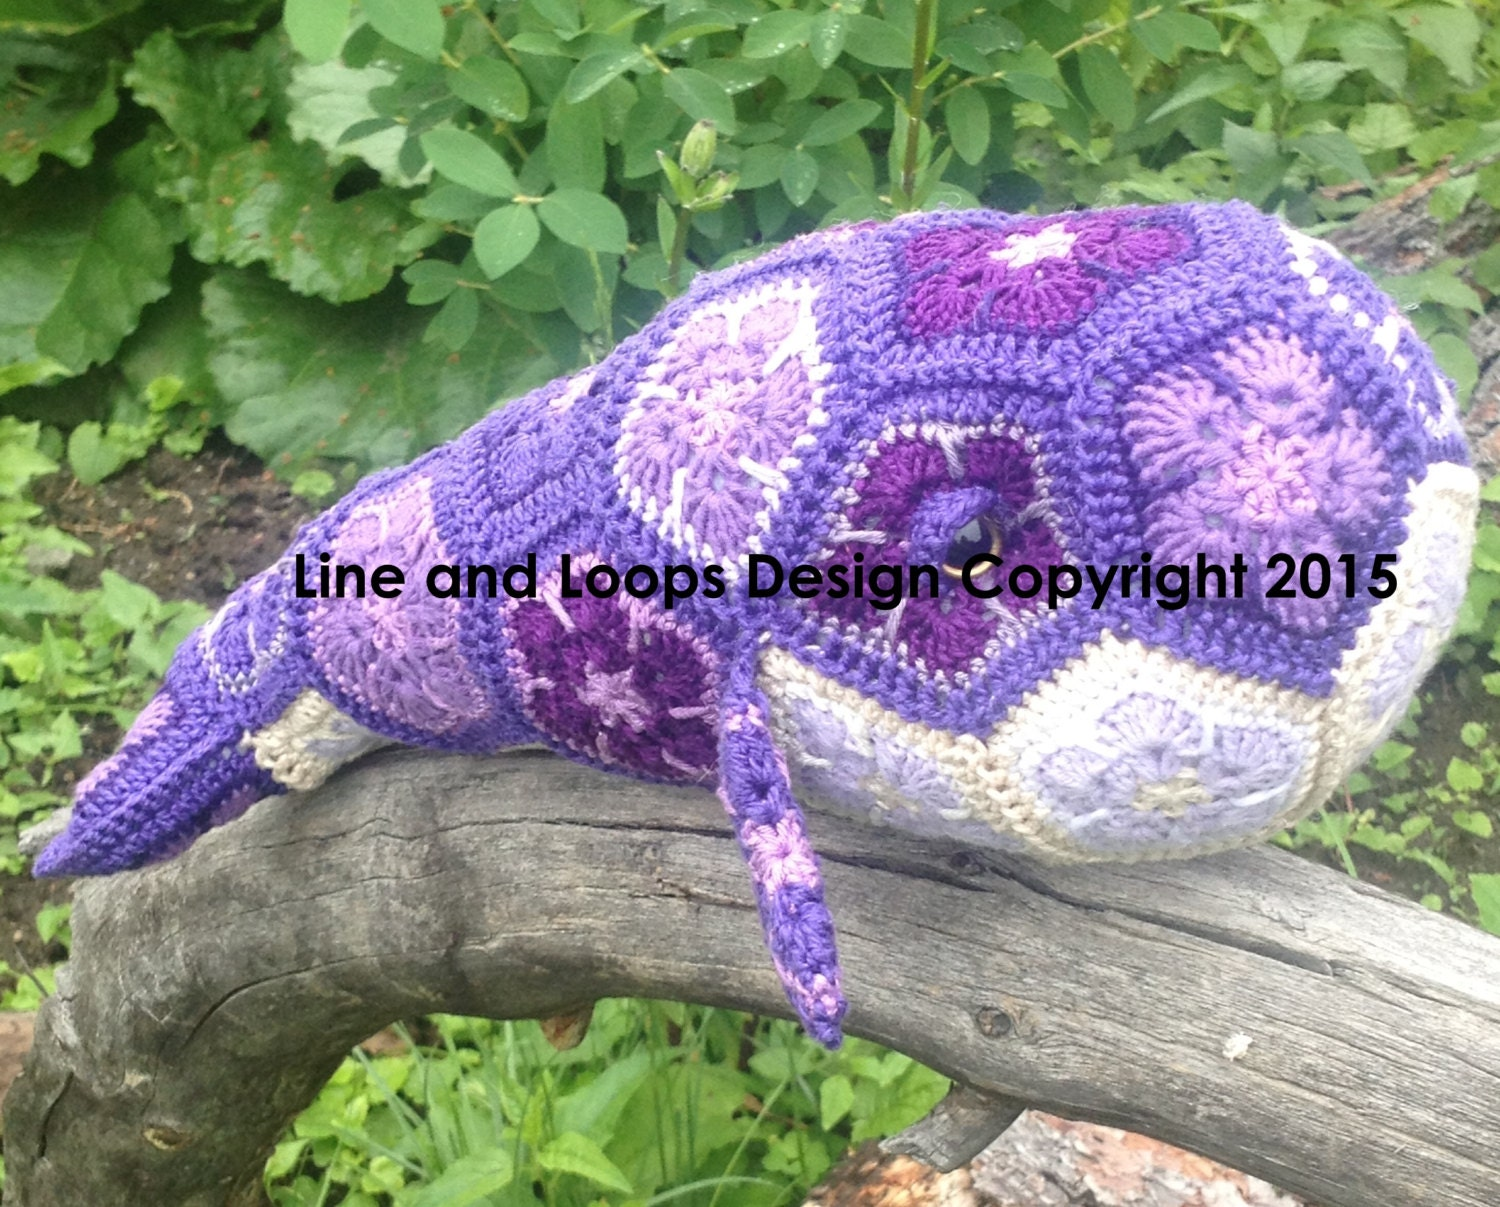 African Flower Crochet Dragon Pattern : Line and Loops Purdy the African Flower Crochet Whale